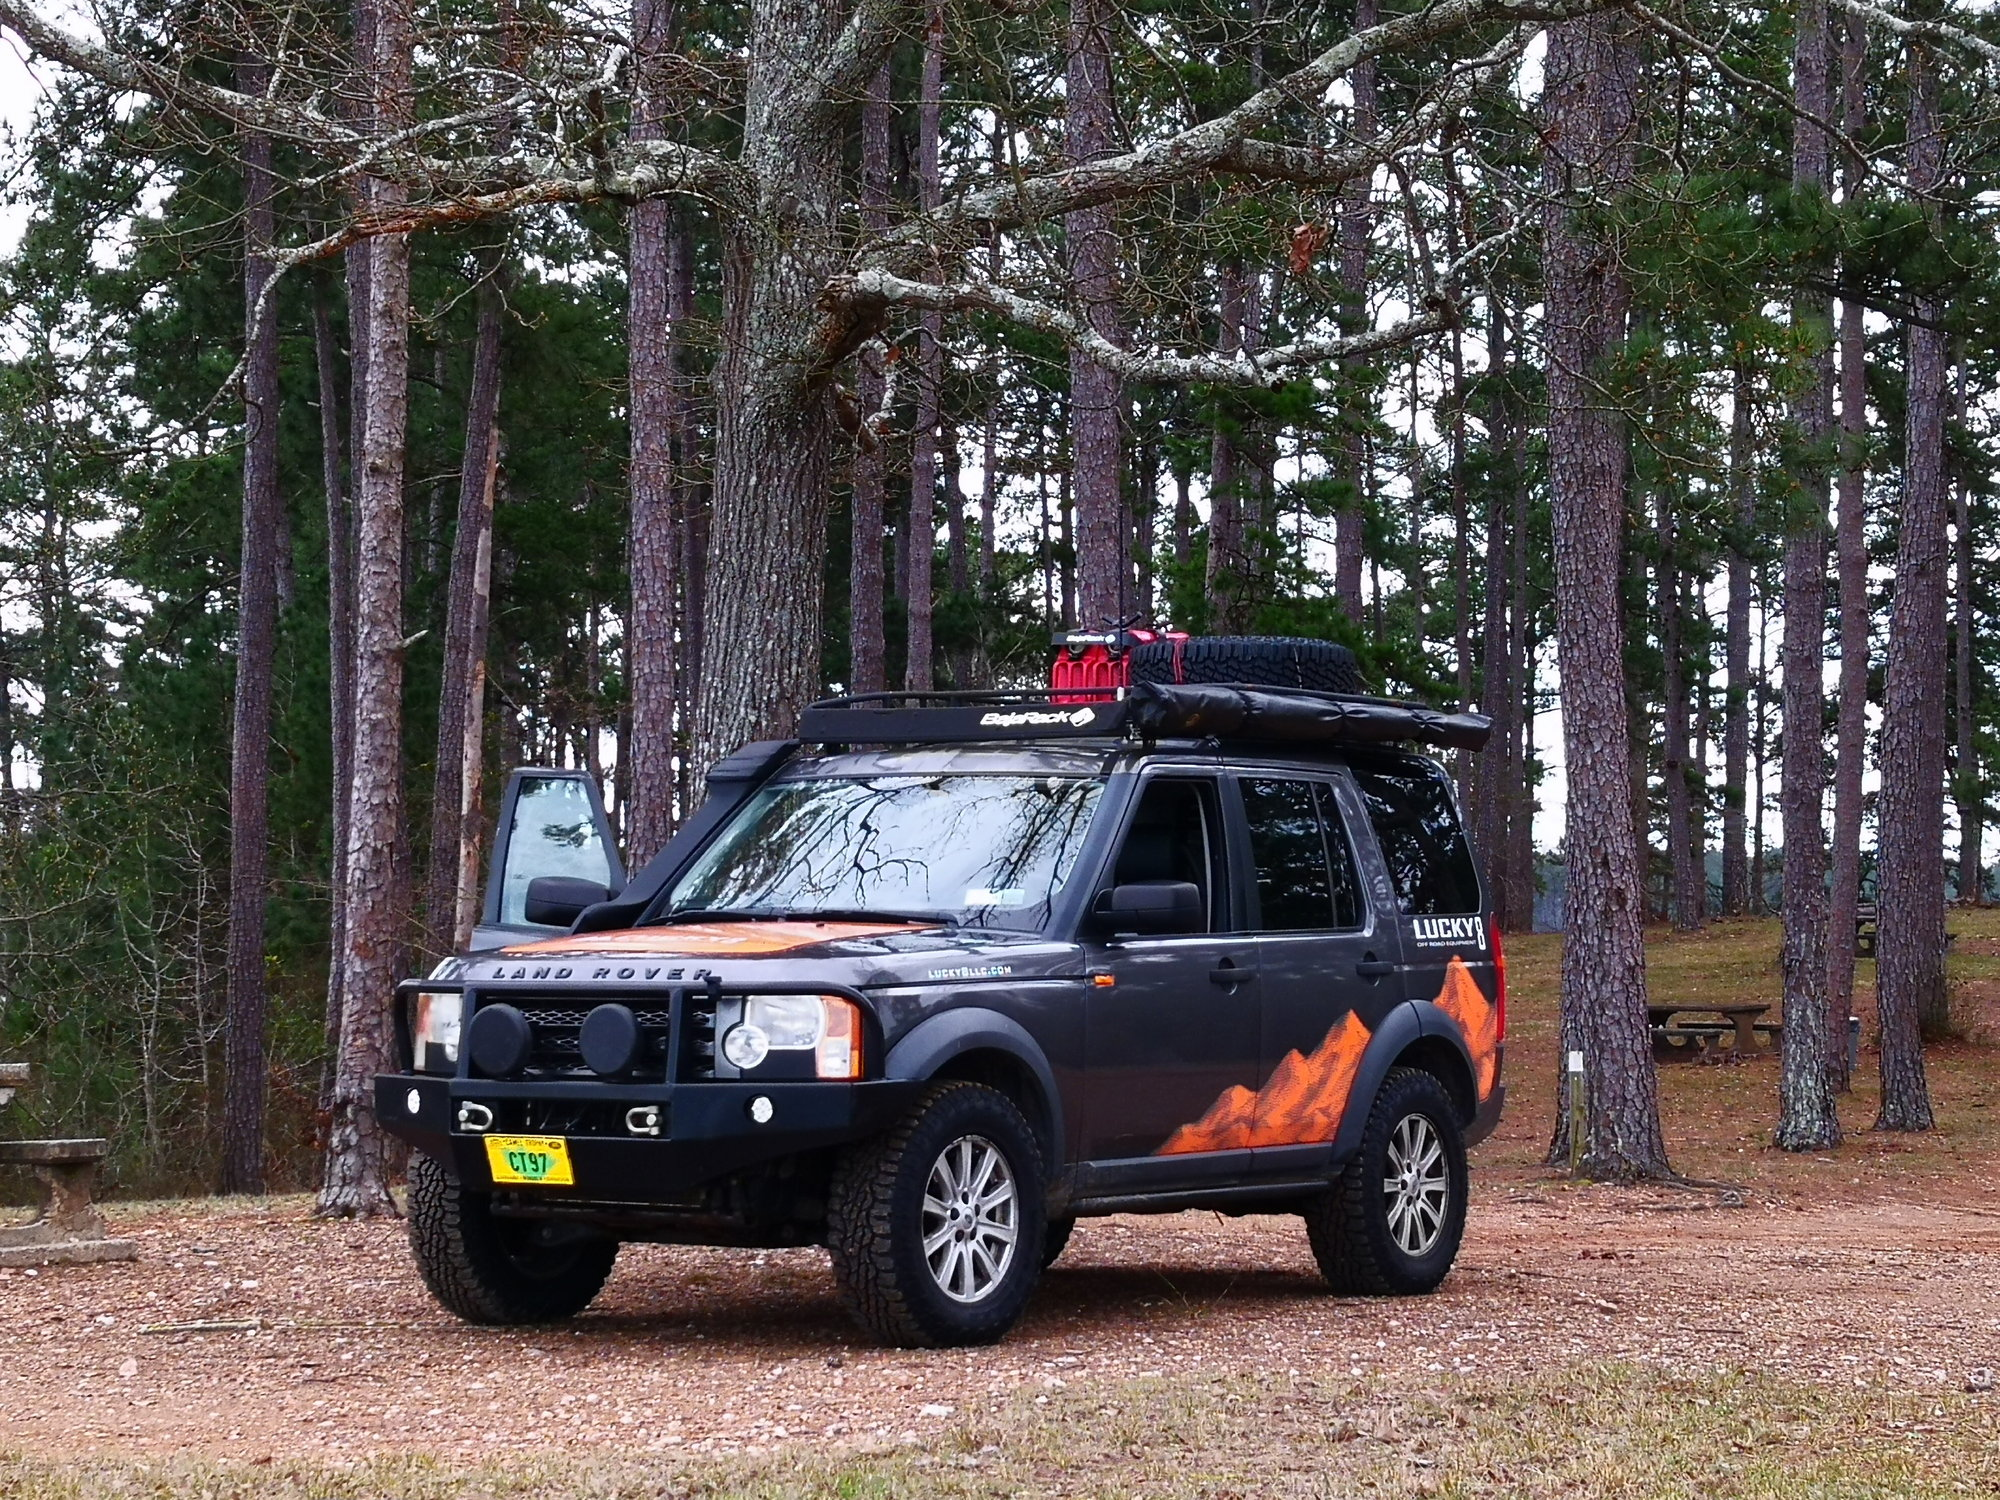 Awning Mount - Land Rover Forums - Land Rover Enthusiast Forum